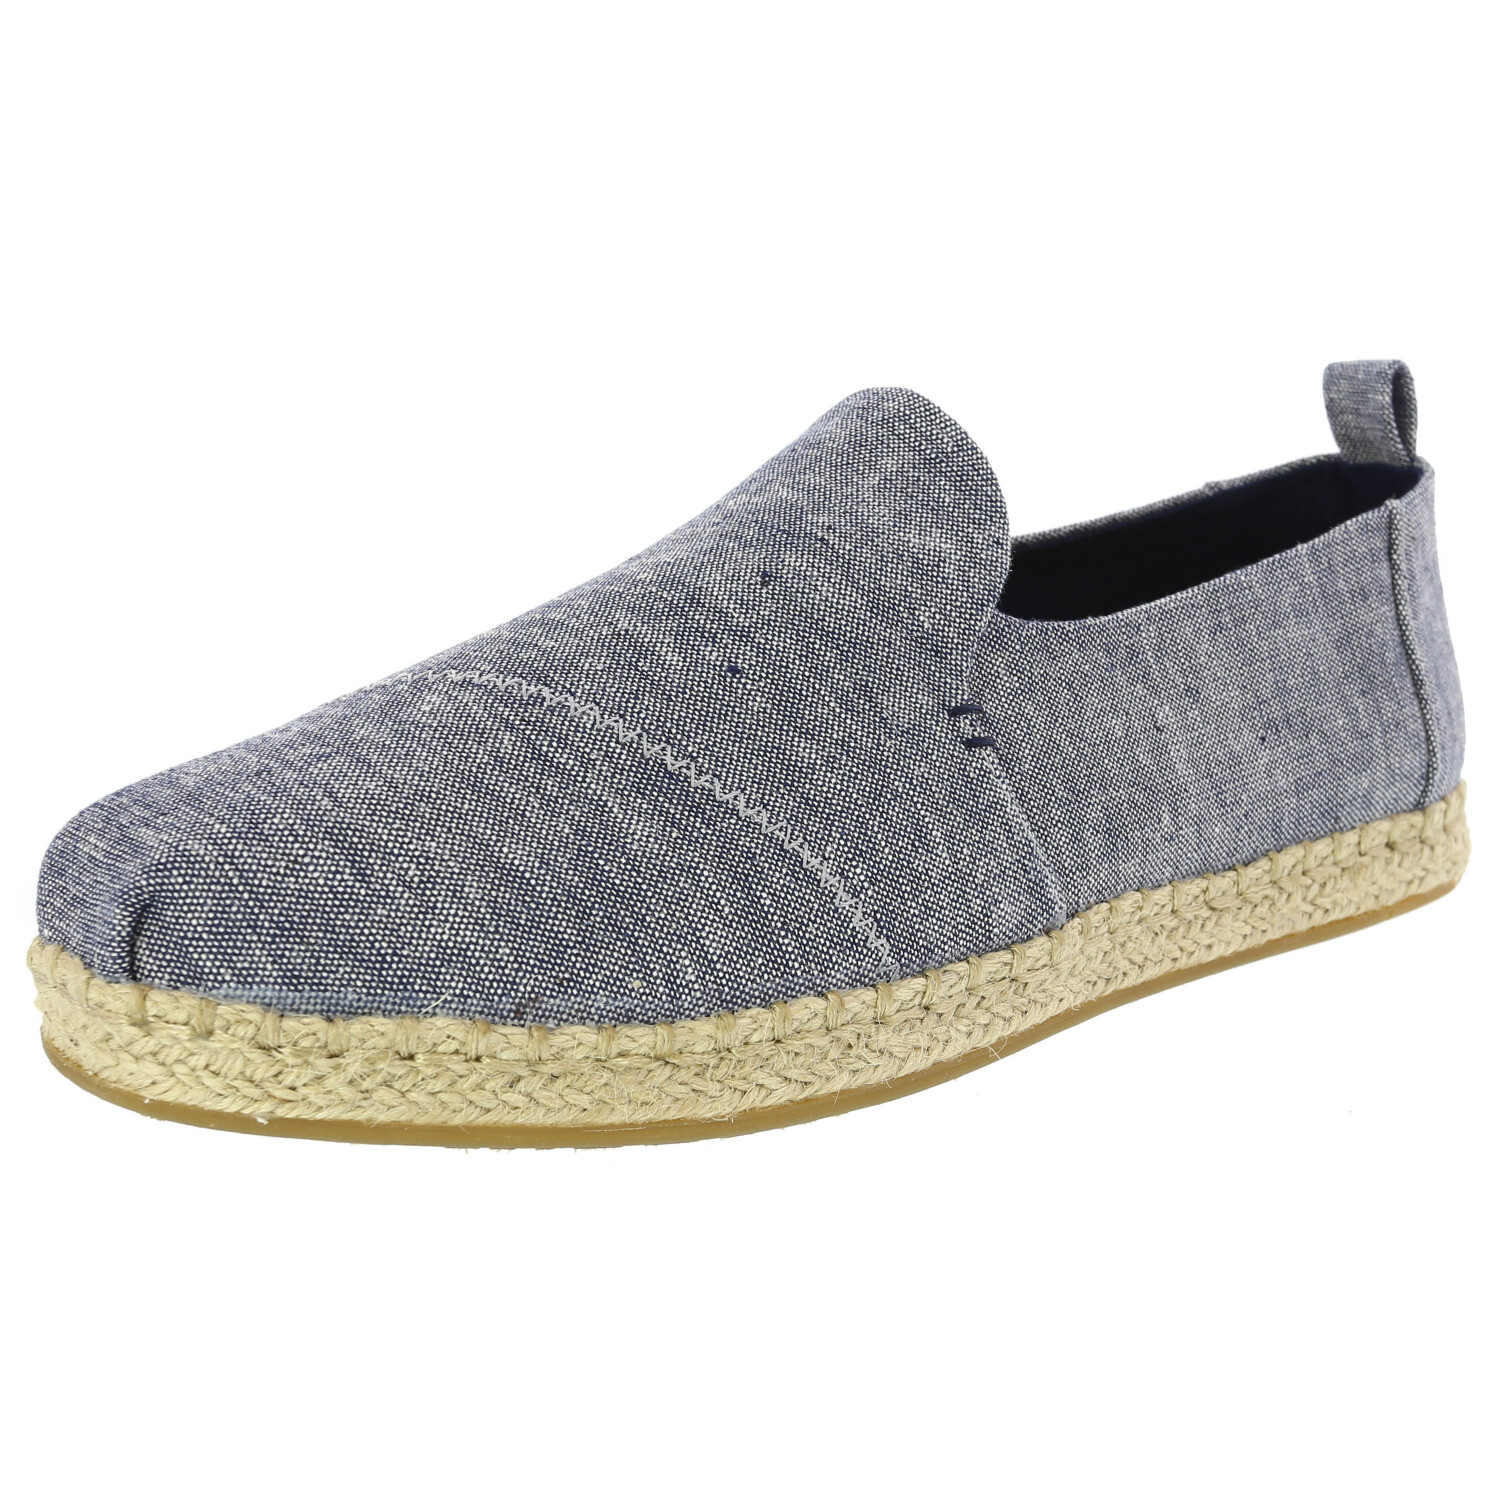 Toms Women's Deconstructed Alpargata Chambray Navy Ankle-High Canvas Slip-On Shoes - 9.5M